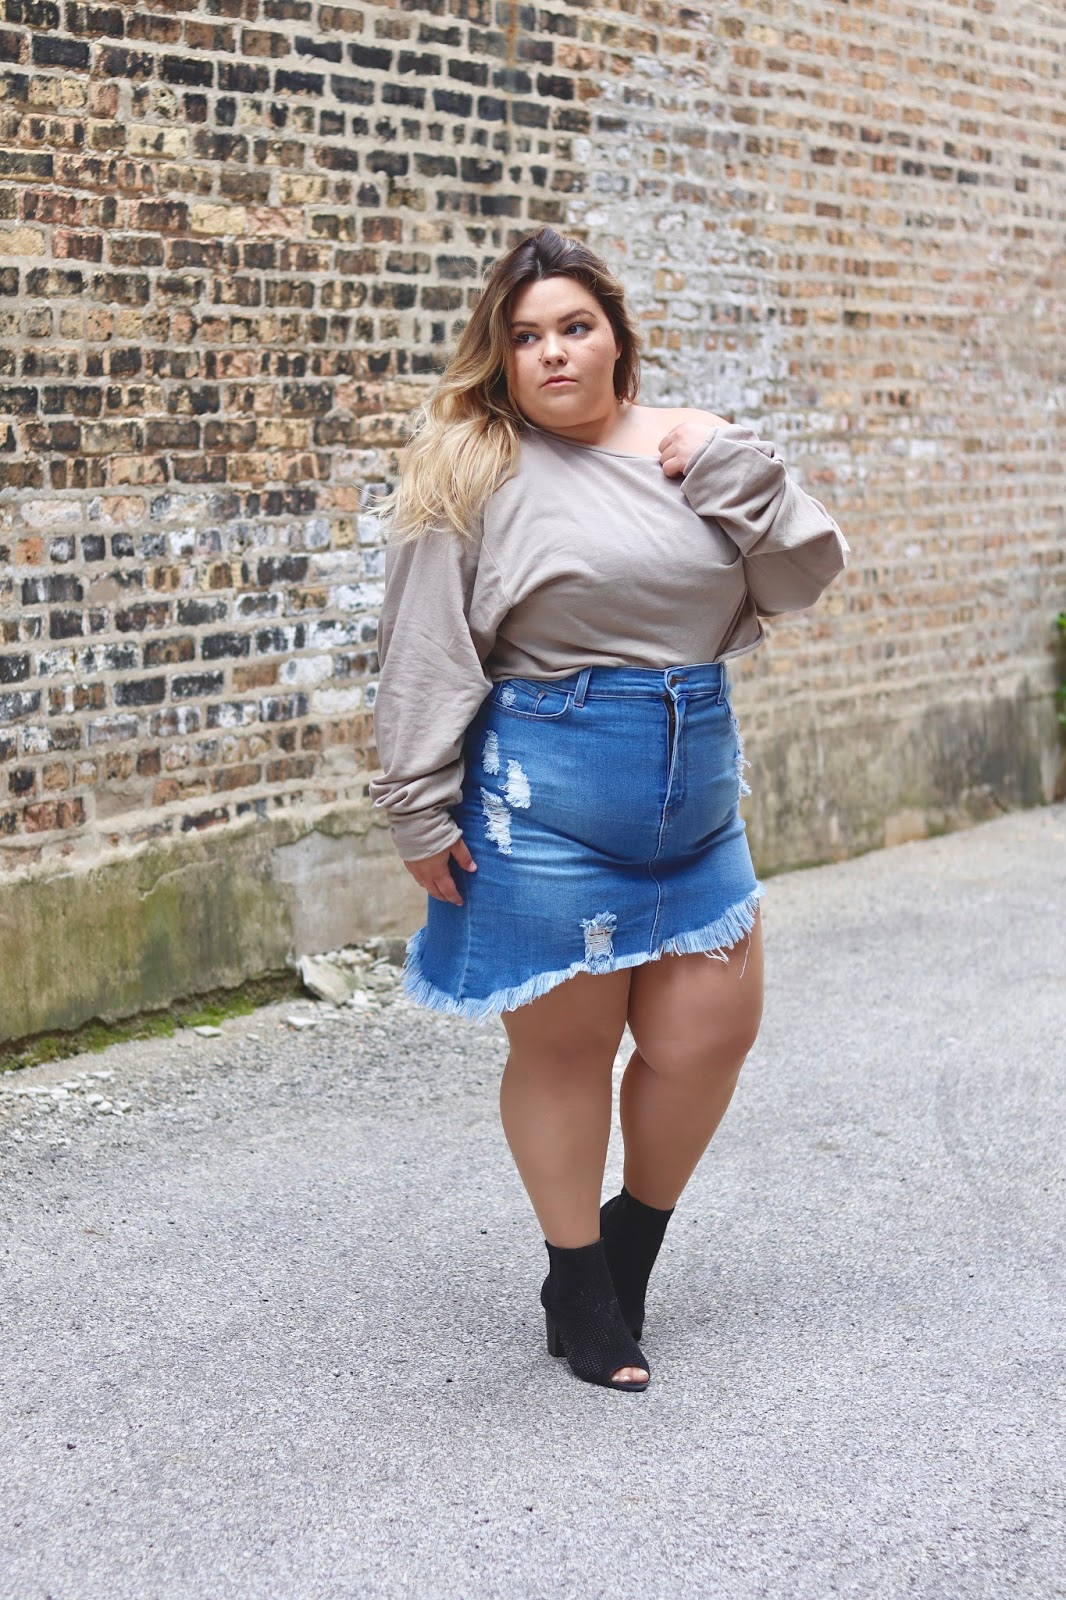 fashion nova, fashion nova curve, blogger review, natalie craig, natalie in the city, Chicago blogger, midwest blogger, plus size fashion blogger, affordable plus size clothing, sexy plus size clothes, oversized sweatshirts, plus size denim skirt, destroyed denim skirt, denim trend